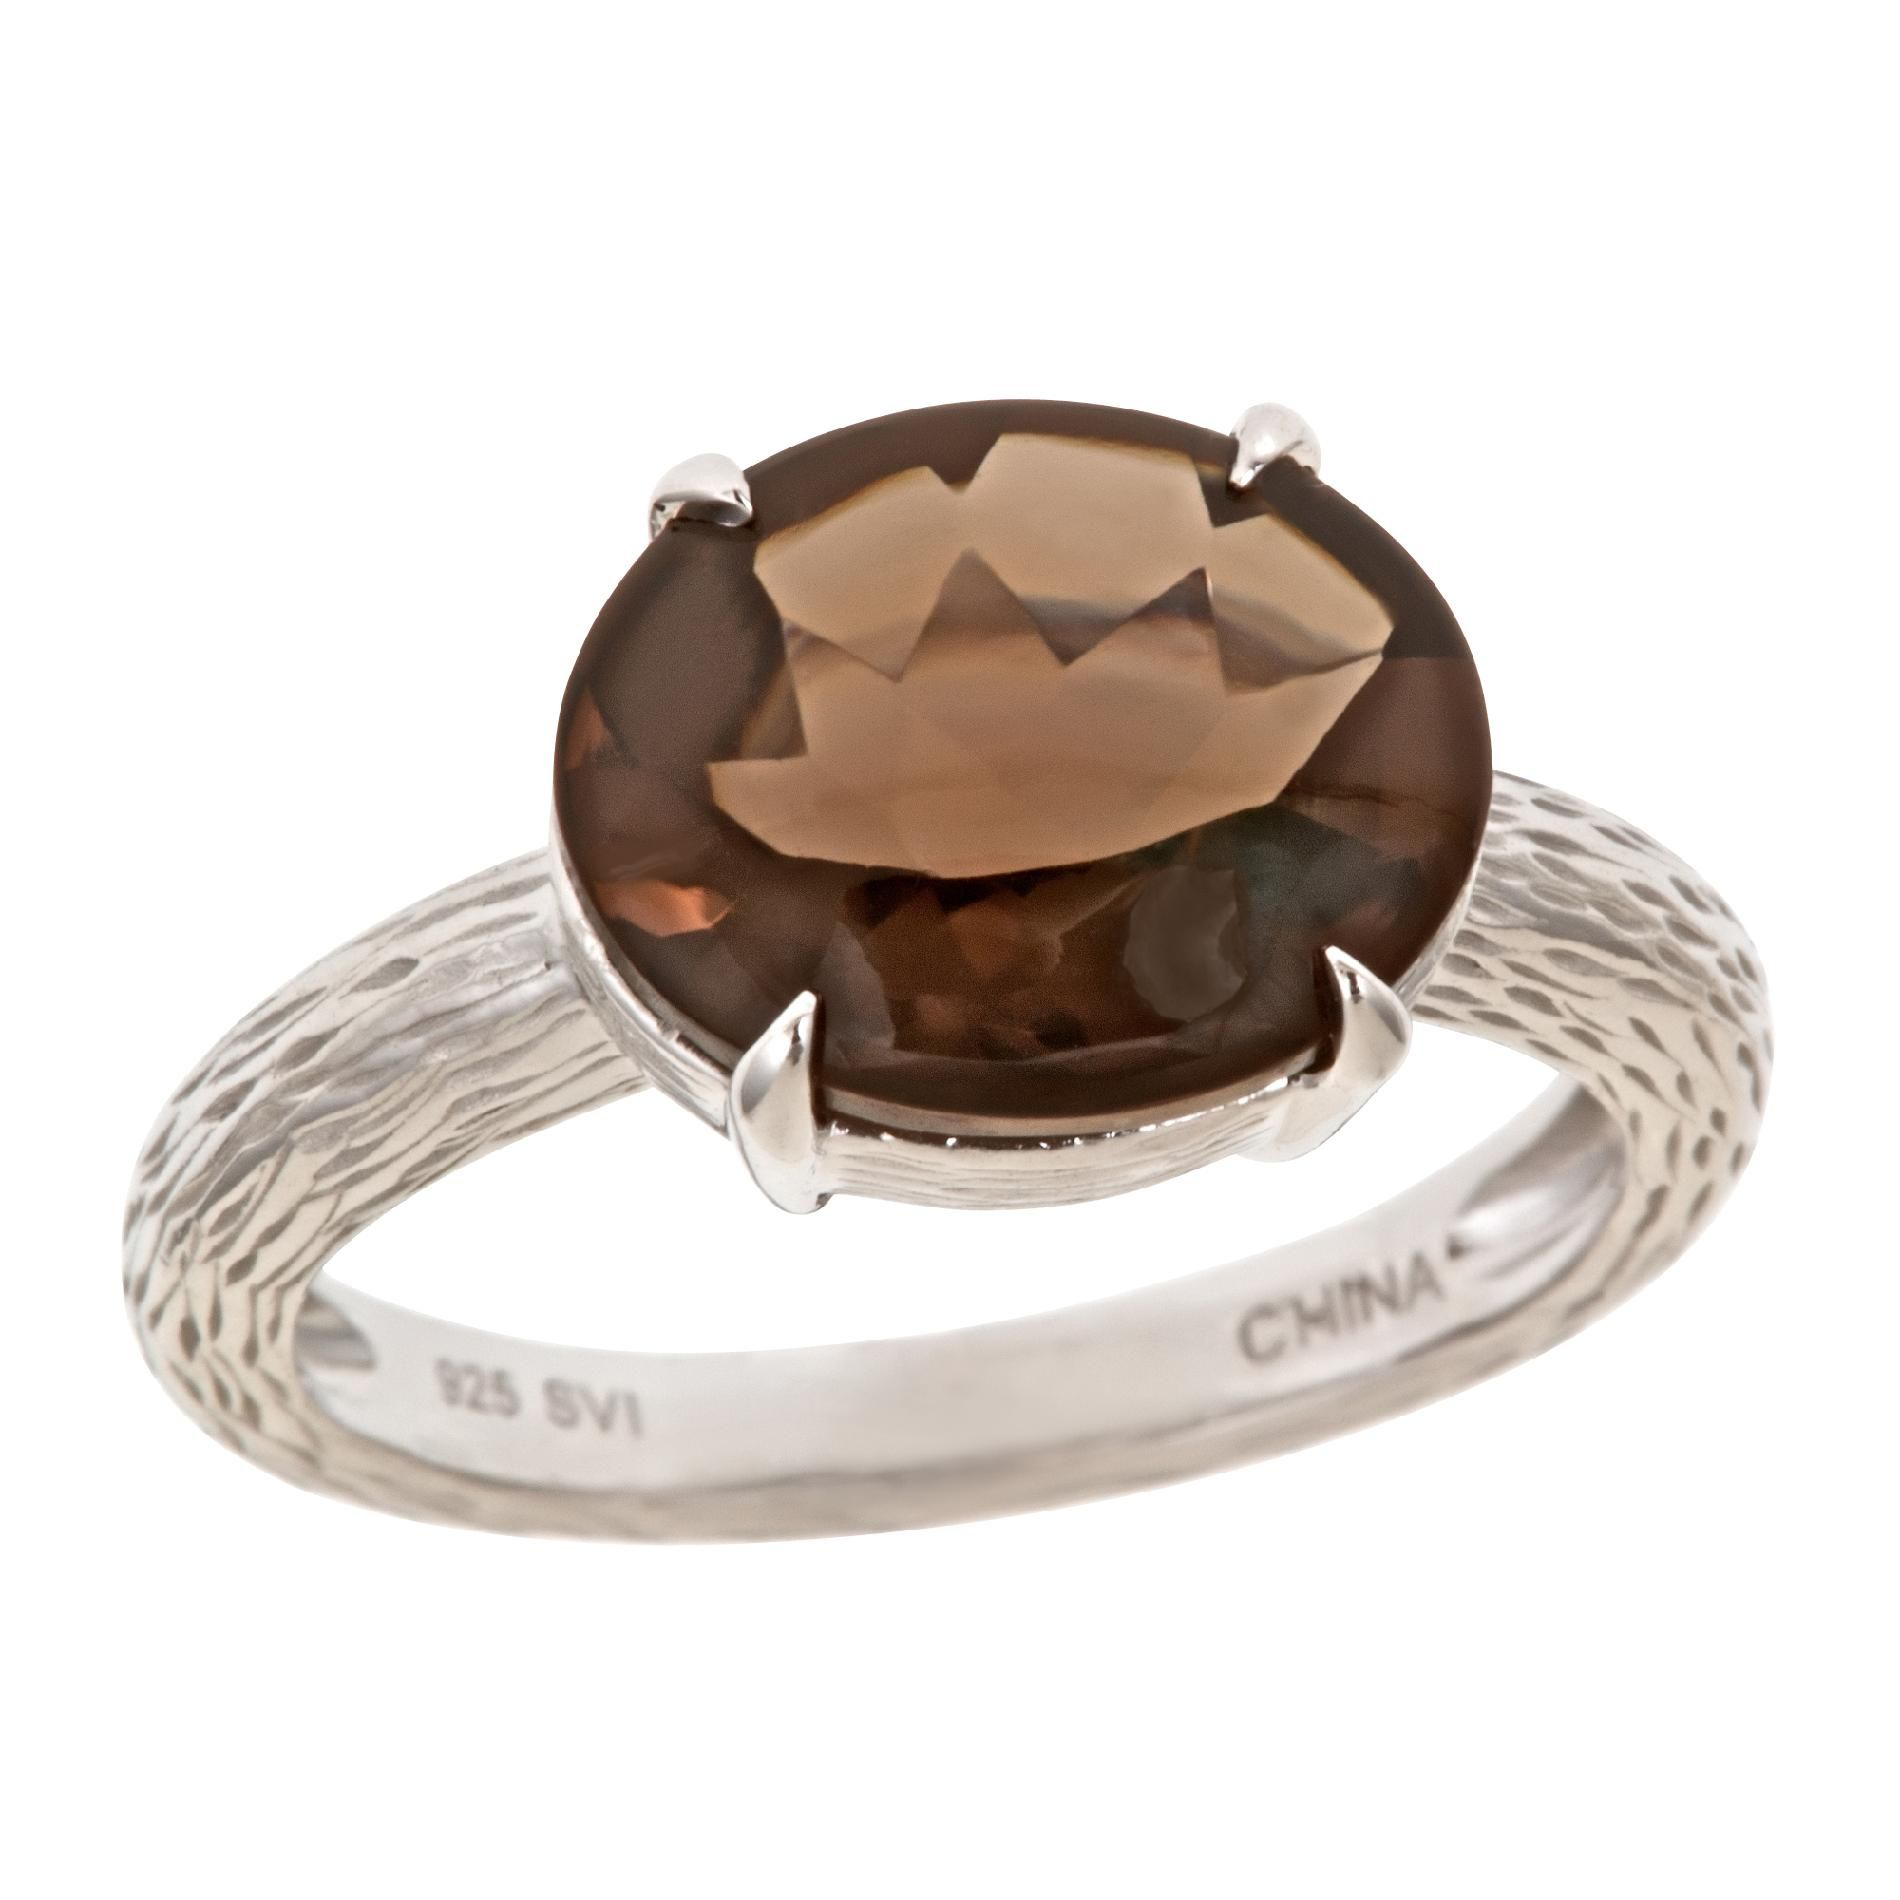 A sterling silver 12x10 oval gemstone ring with textured shank.